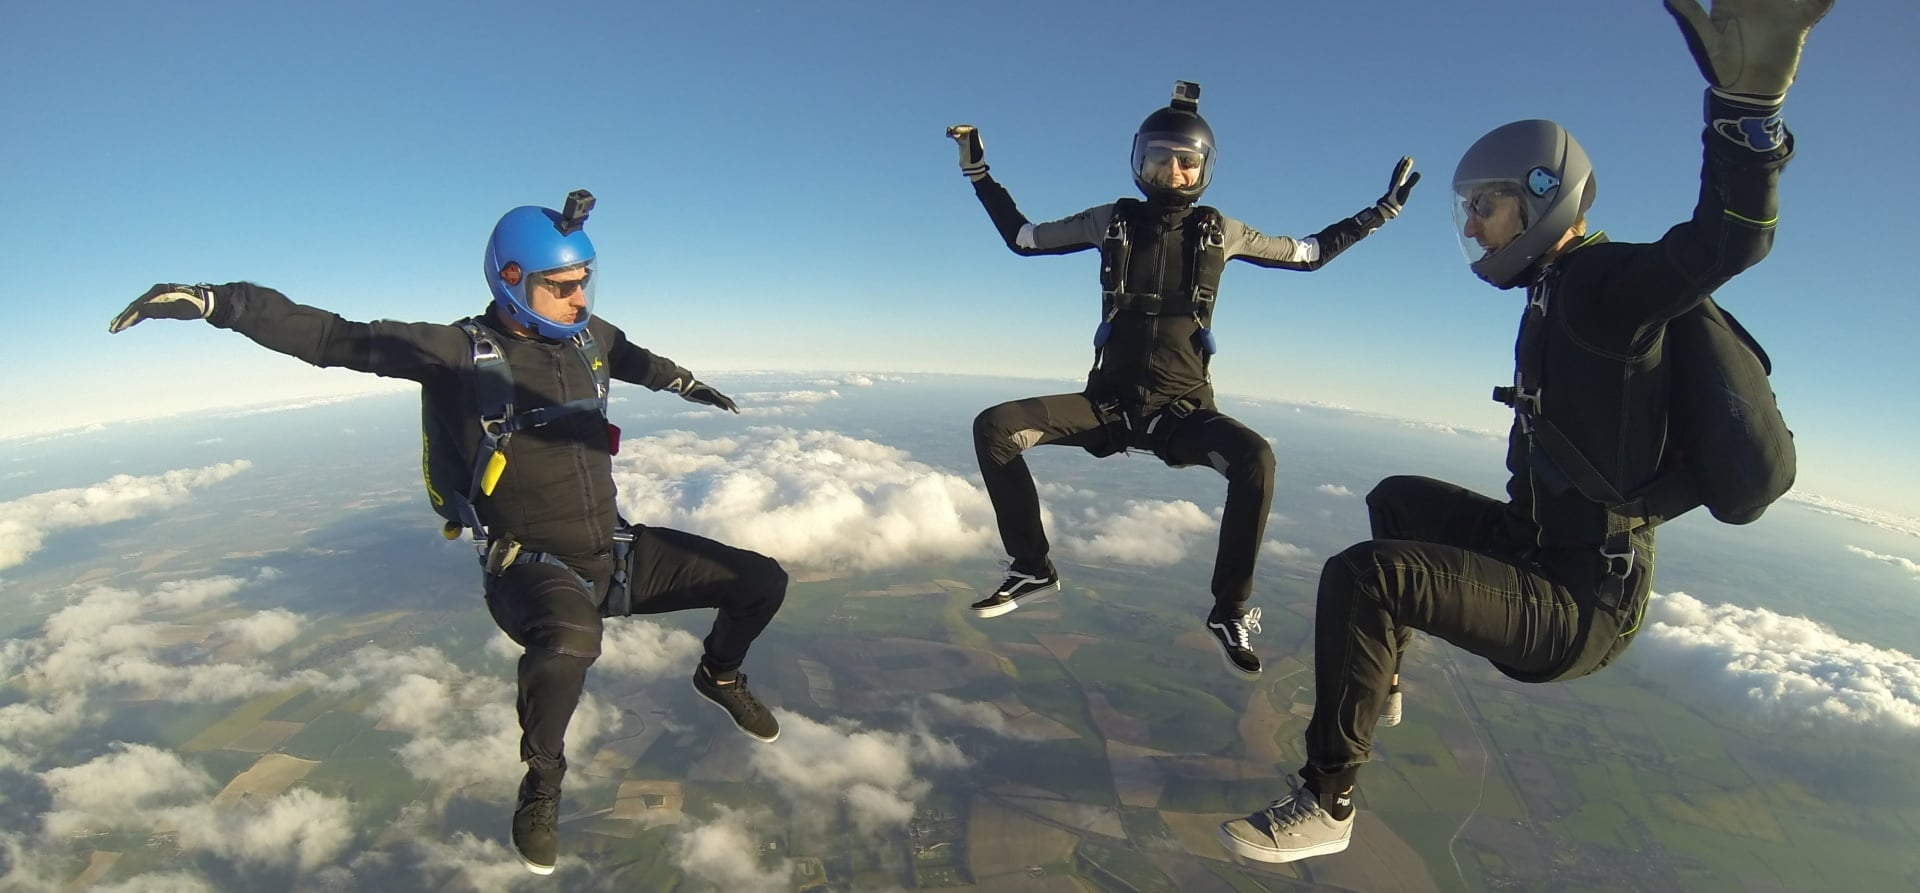 Skydiving Course UK - AFF Level 1-4